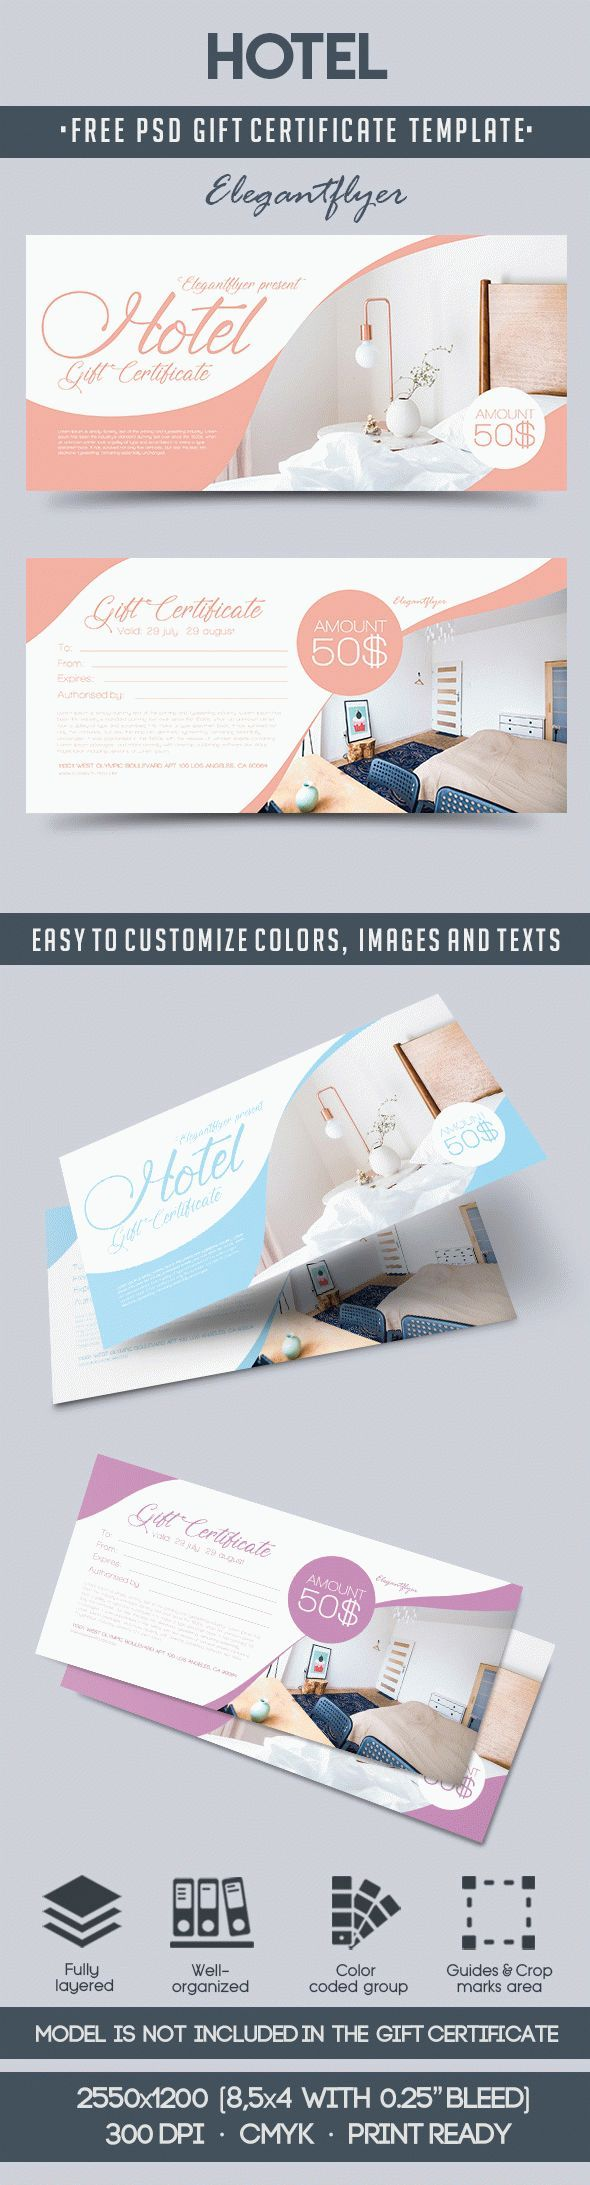 Hotel Free Gift Voucher | Free gift certificate template, Gift ...